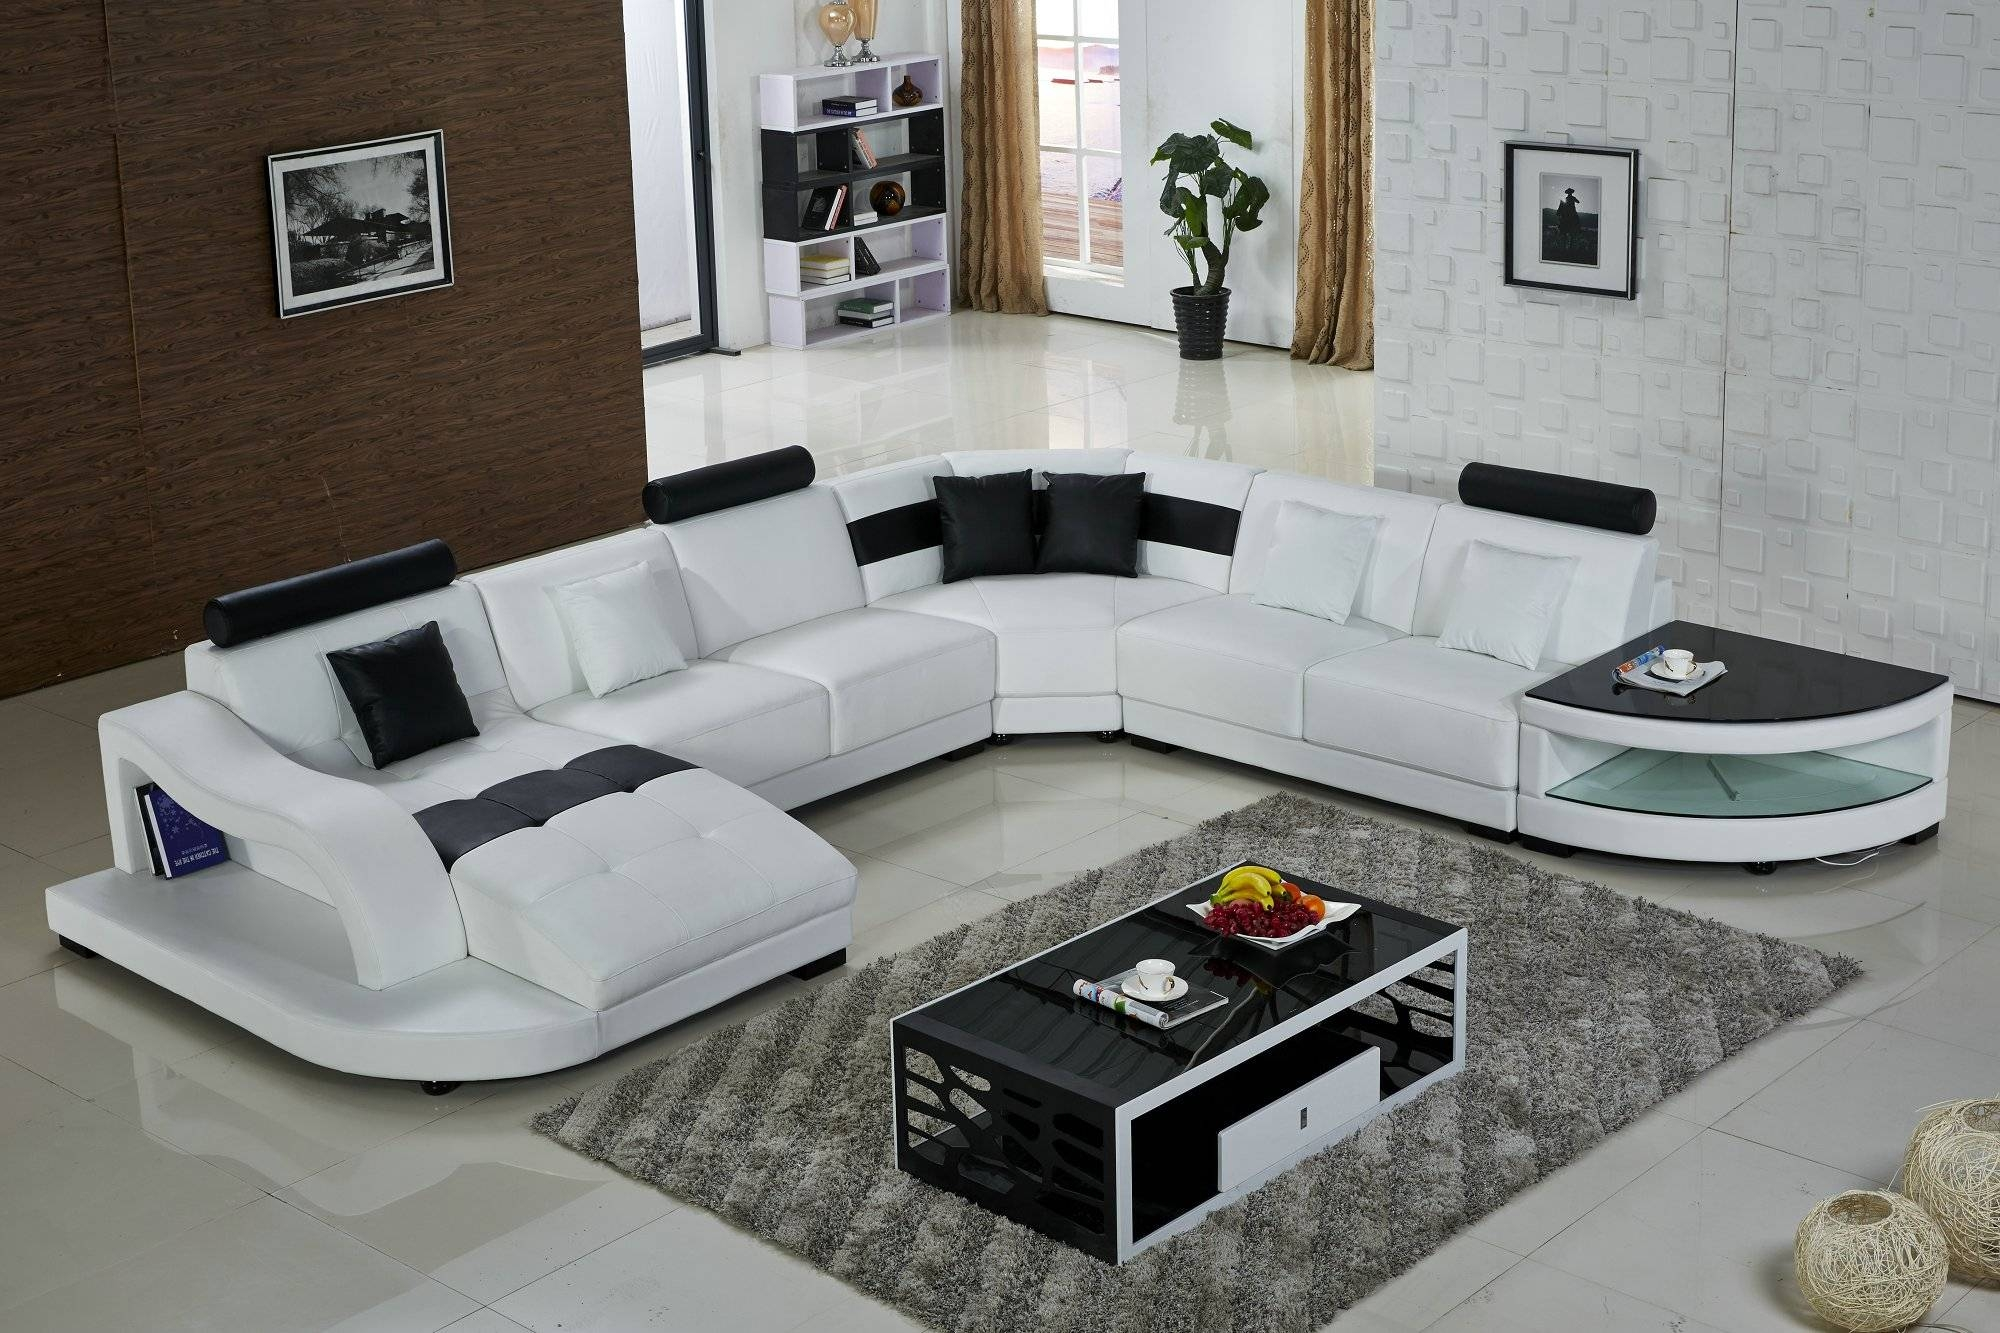 Sofa Corner Sets For Living Room | Ciov inside Unique Corner Sofas (Image 13 of 30)